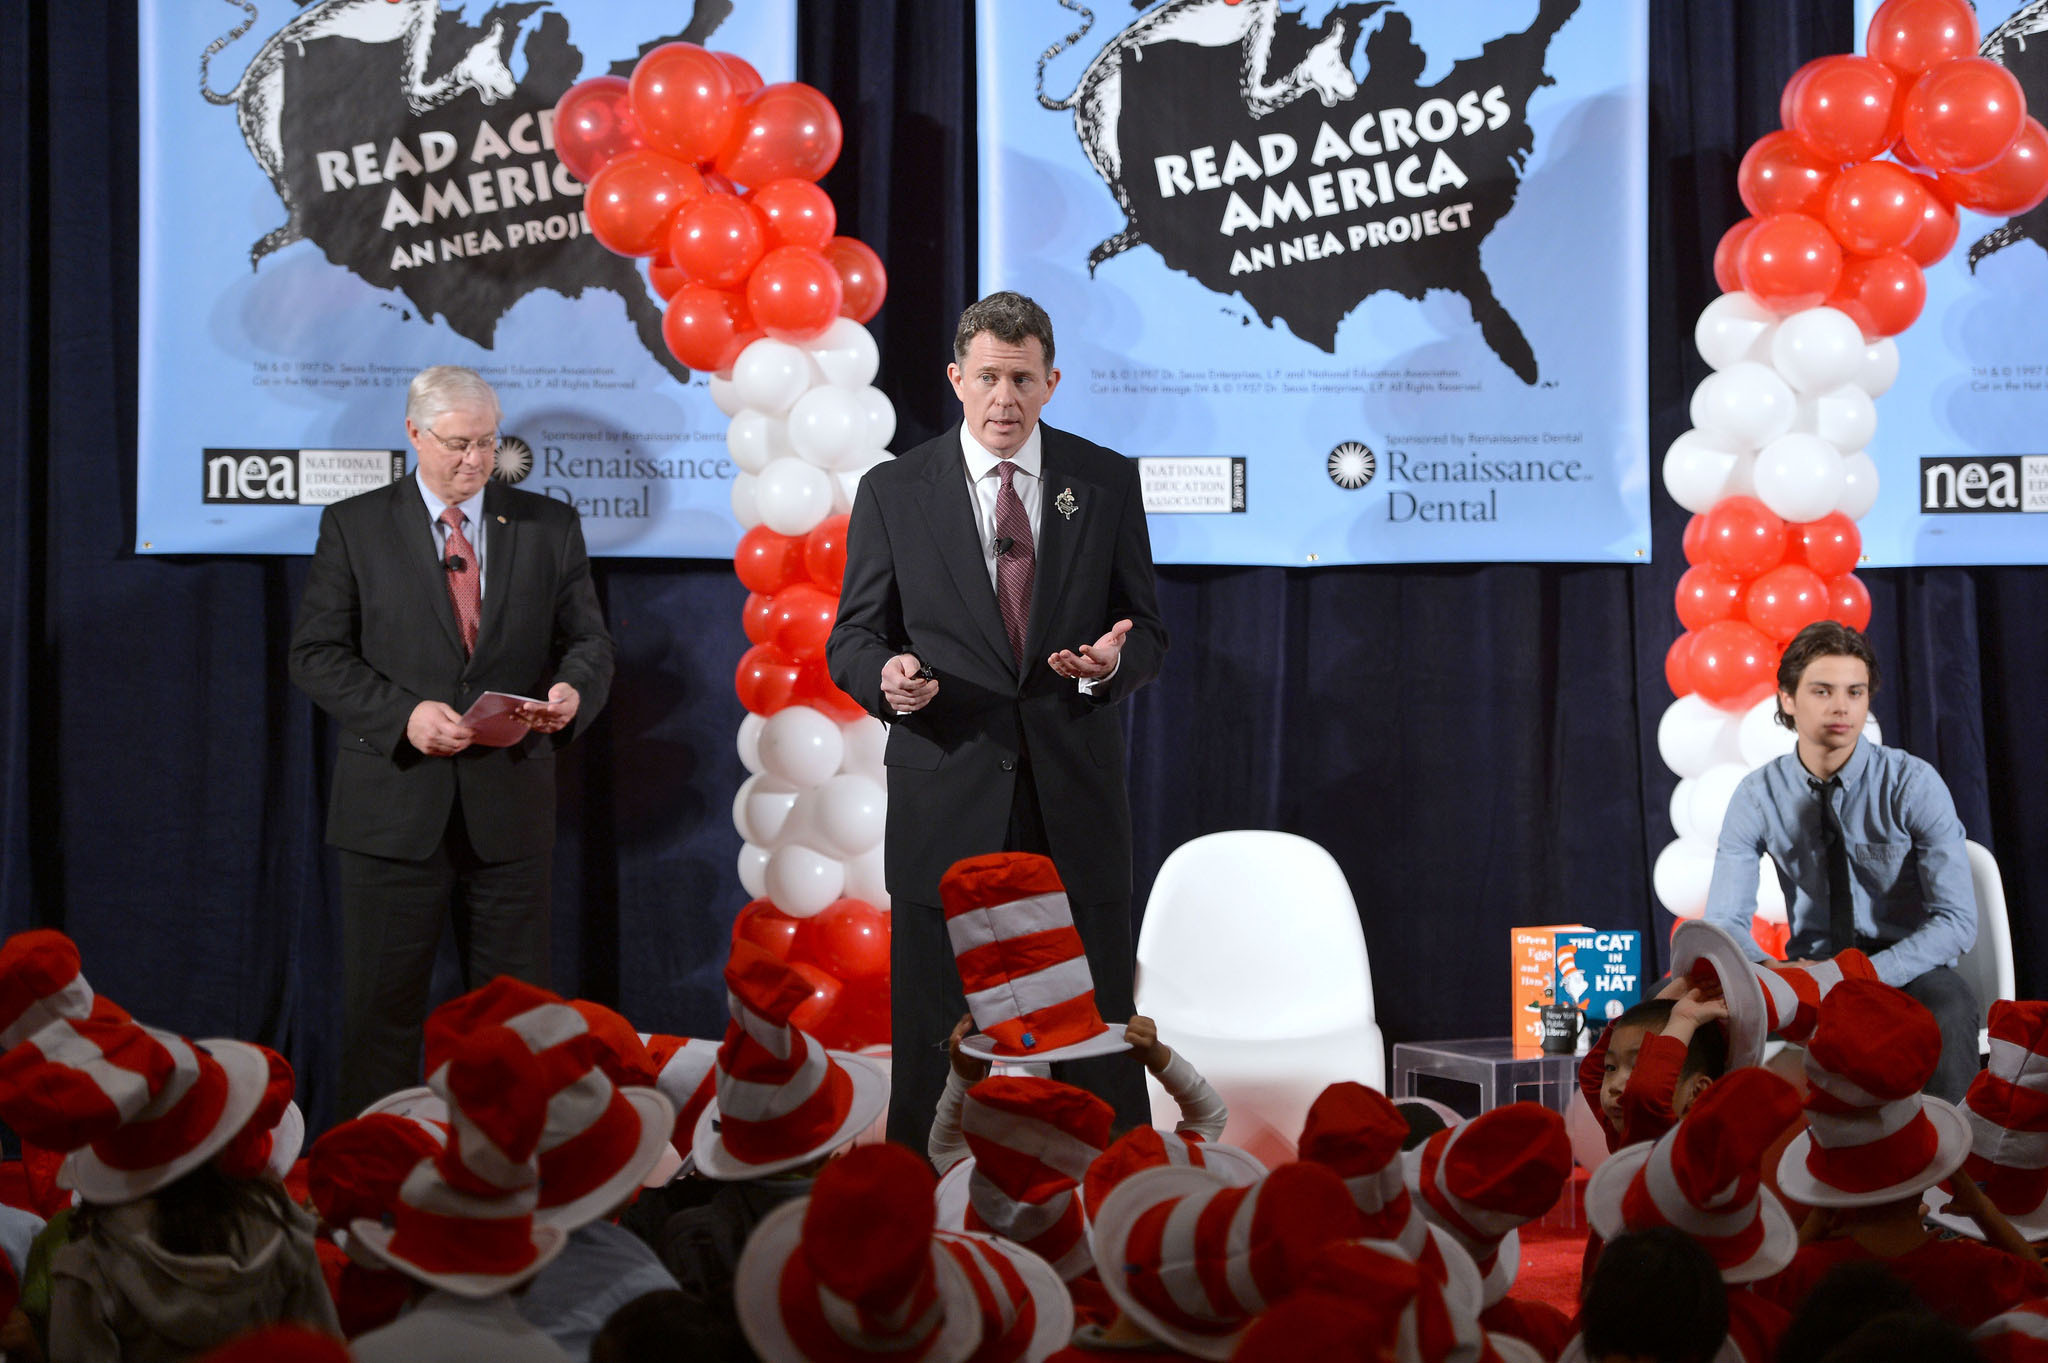 Read Across America Partners With Renaissance Dental to Encourage Children to Pick up a Book and a Toothbrush